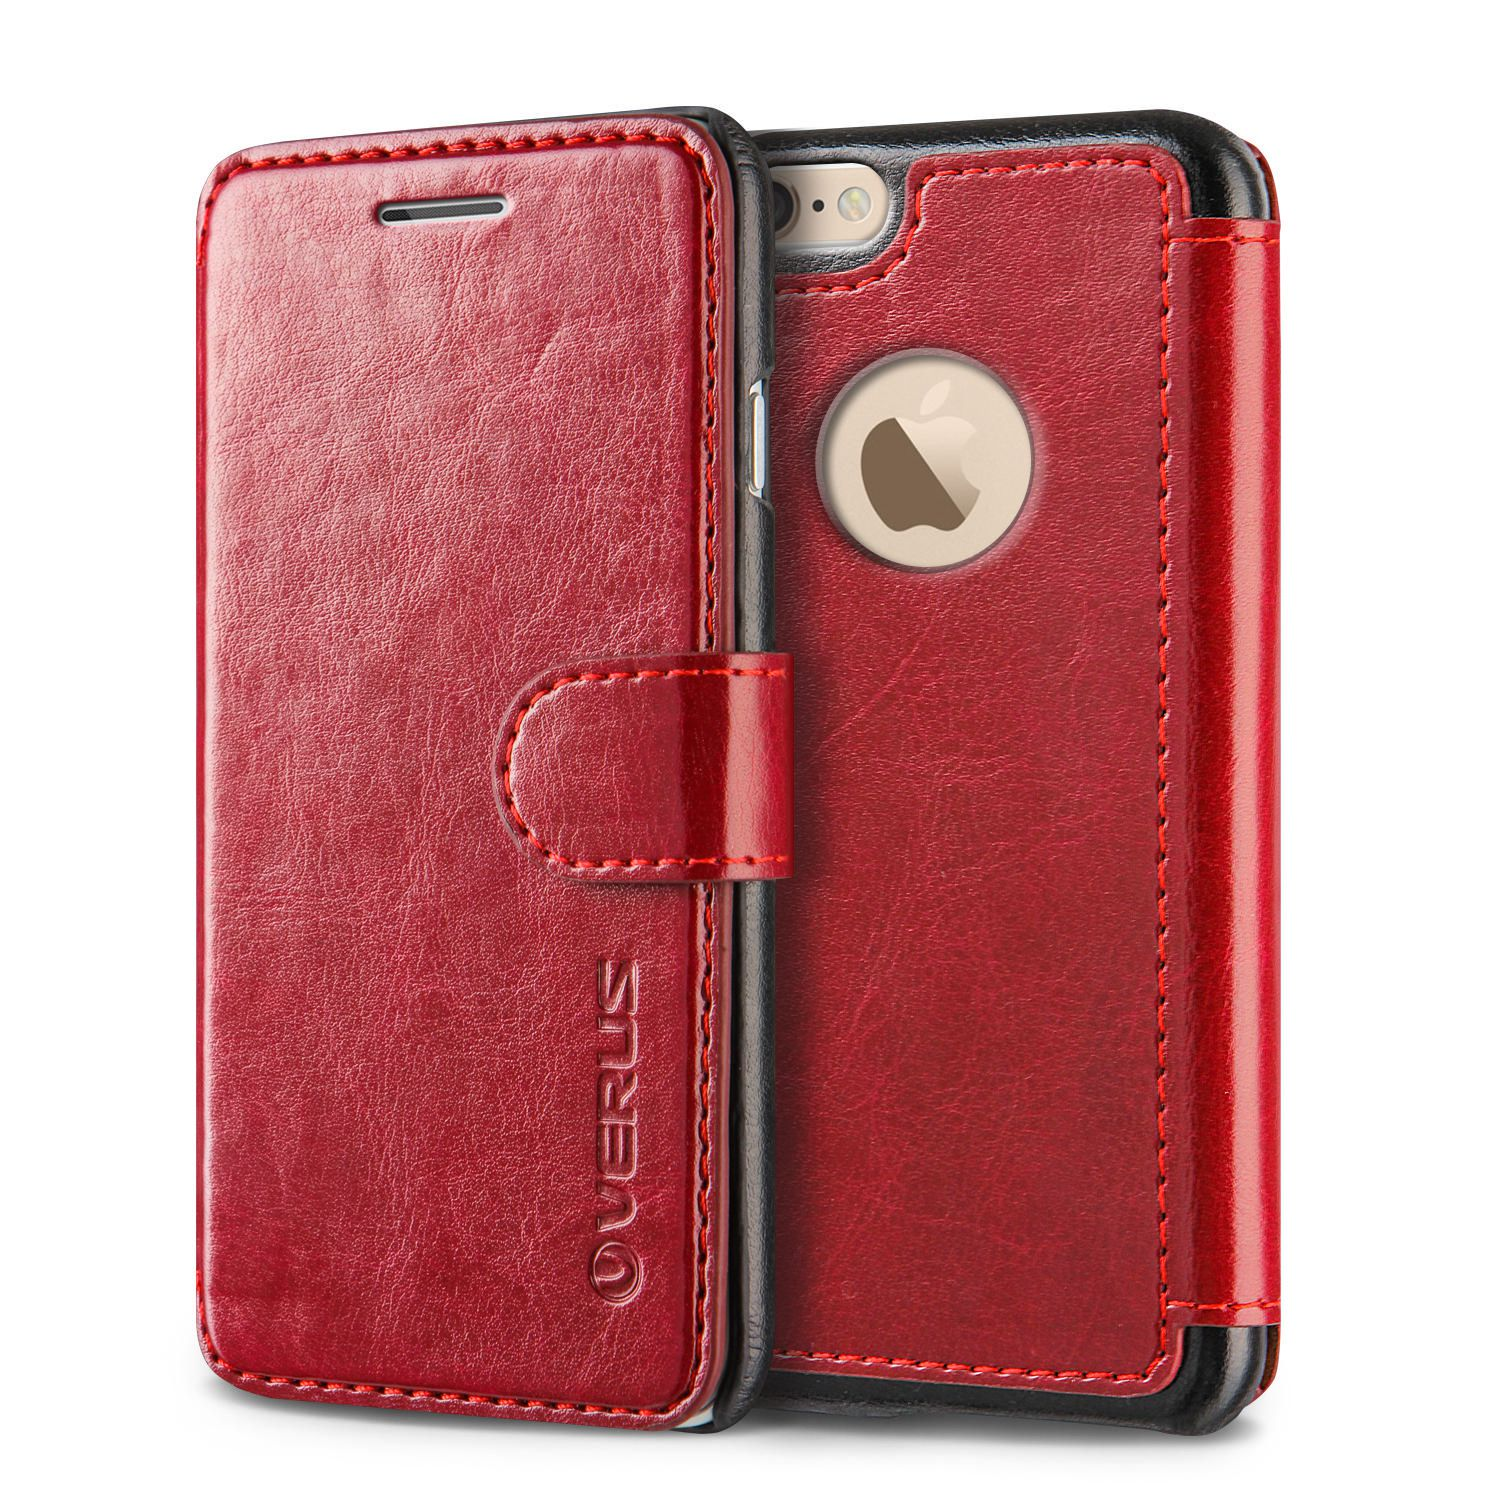 sports shoes f6ac8 c0b41 Verus Layered Dandy Wallet Case for iPhone 6/6S Plus - Red